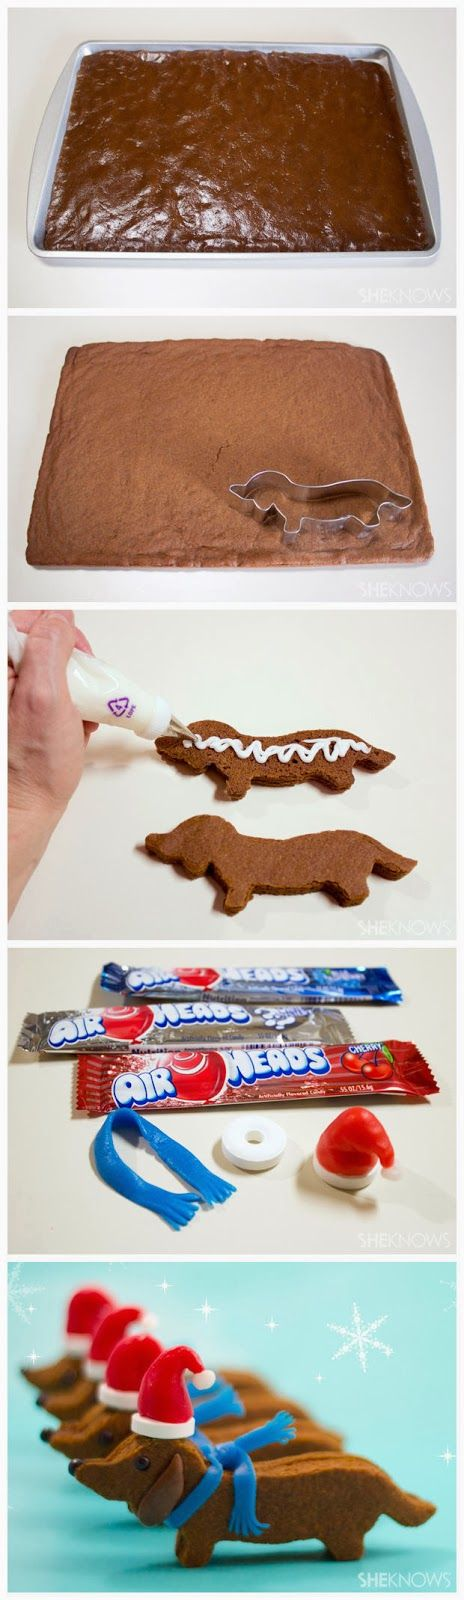 Red Sky Food: Wiener dog Santa cookies. What could be better? Of course, I don't know if I could actually EAT one of these!